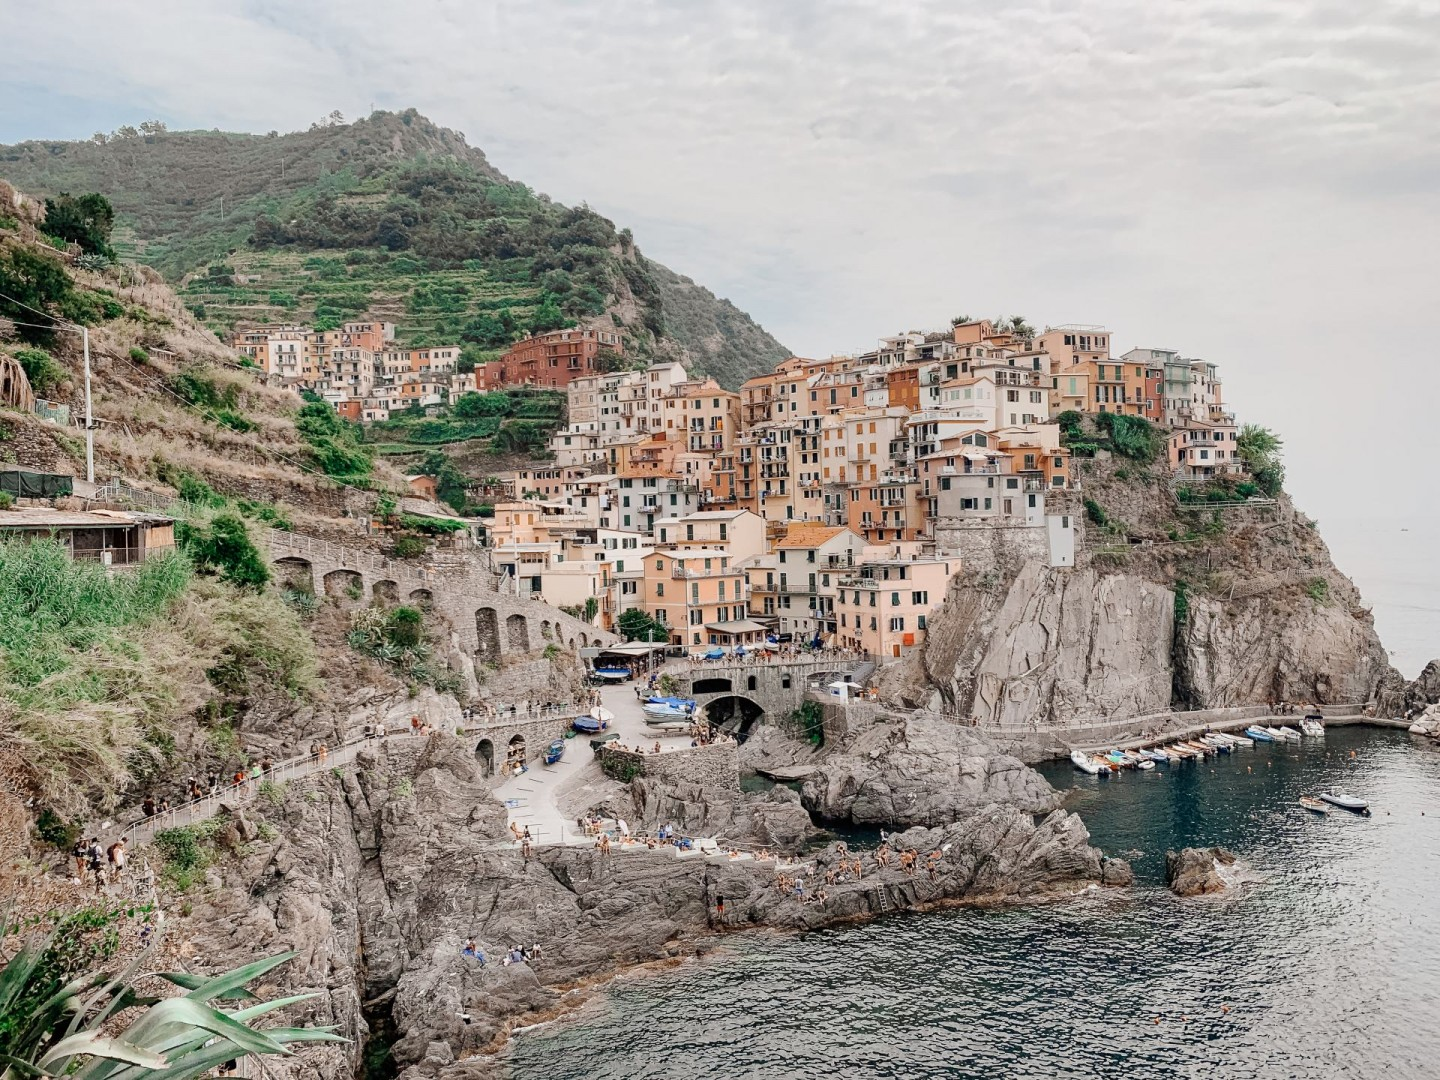 Lifestyle blogger Mollie Moore shares a Cinque Terre travel guide | Travel Guide: Things to do in Cinque Terre, Italy by popular London travel blogger, Mollie Moore: image of colorful buildings on a cliff in Cinque Terre, Italy.